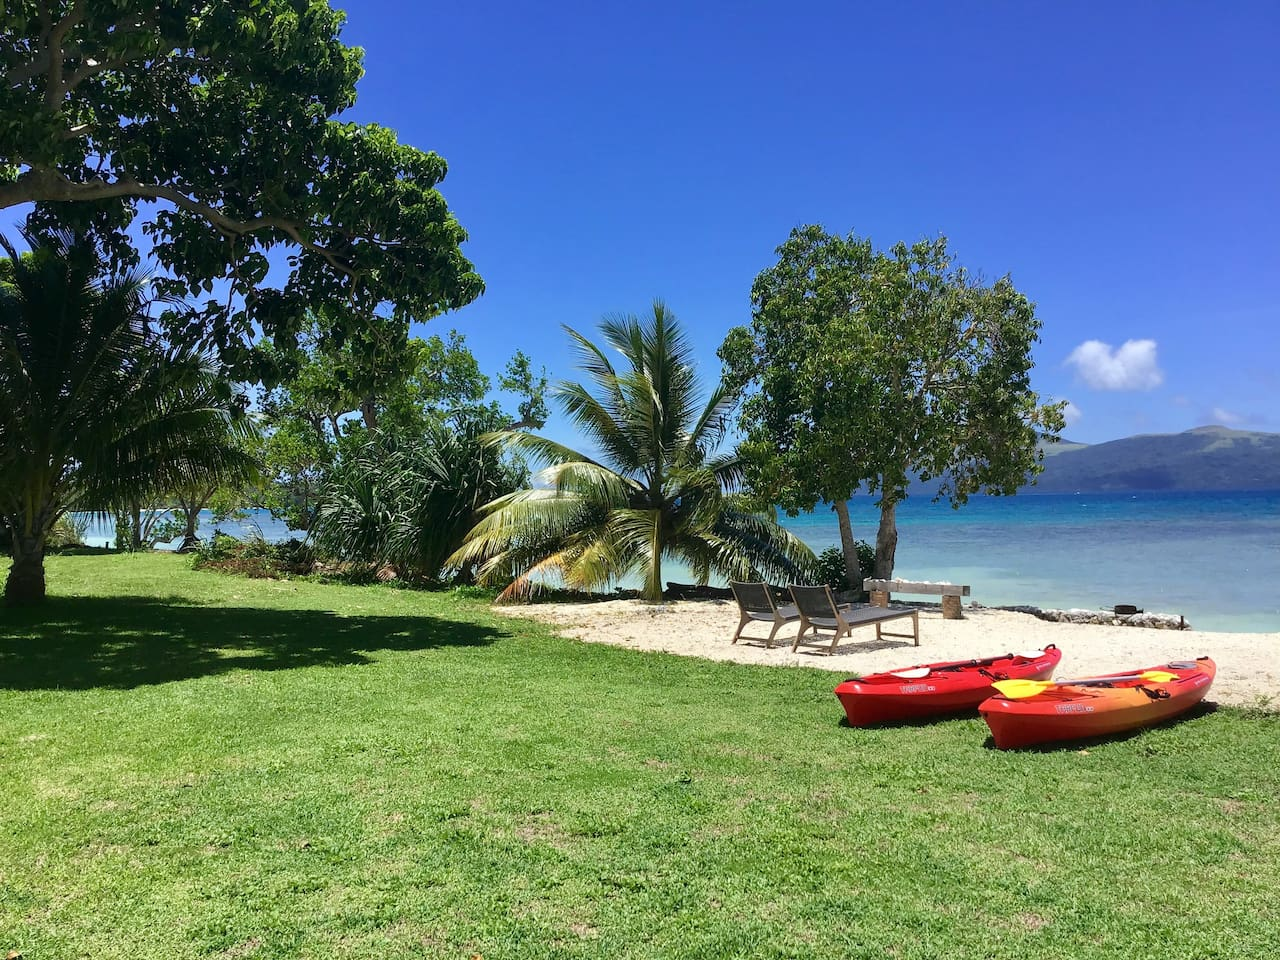 Top beach  and kayaks in front of house